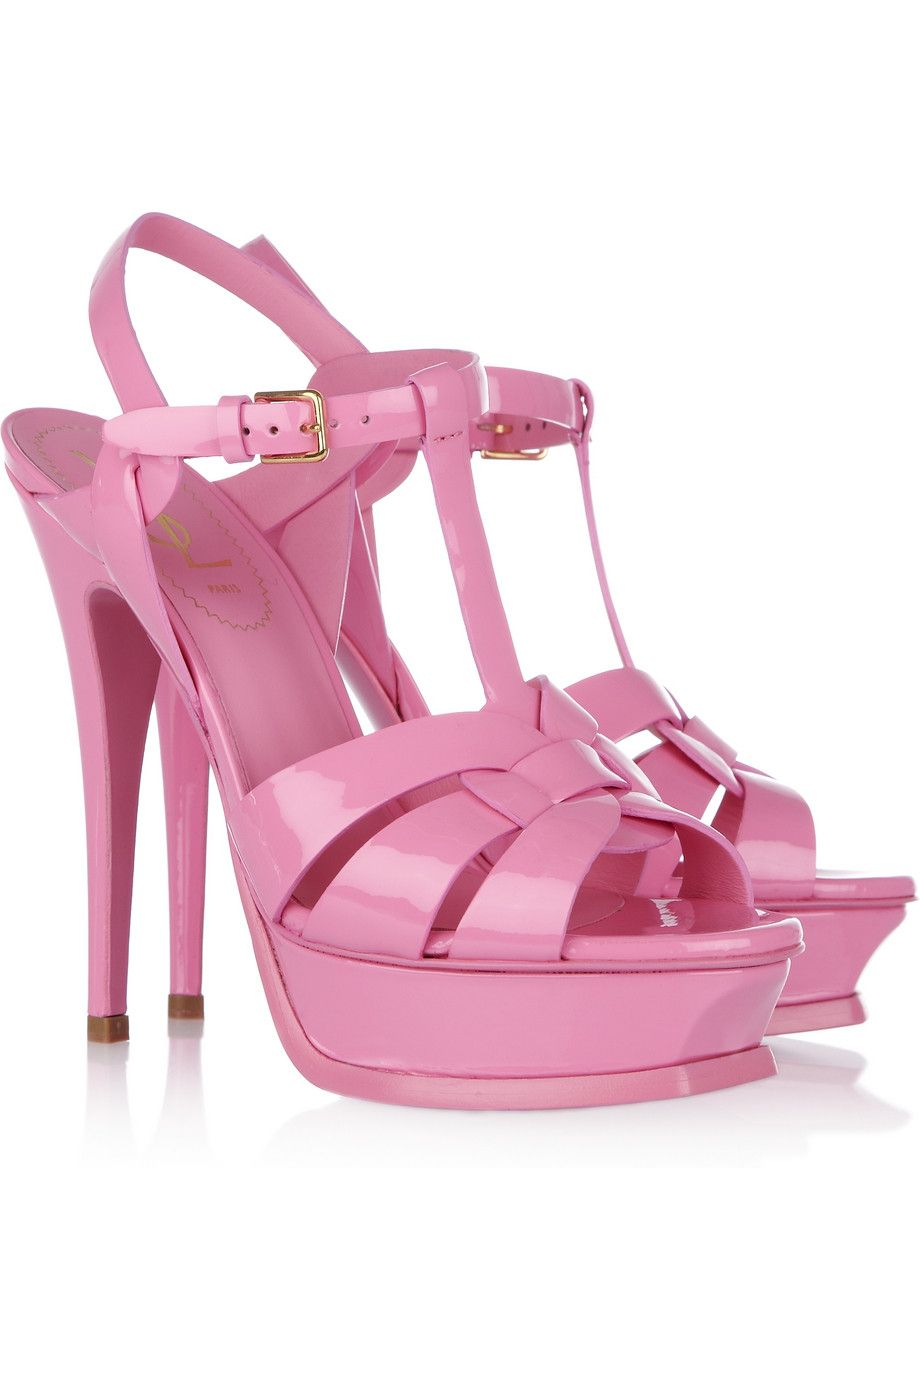 a2939dd581cc YVES SAINT LAURENT Tribute patent-leather sandals. My Husband fell in love  with this shoe and bought it for me. Unfortunately I don t like bubble gum  ...